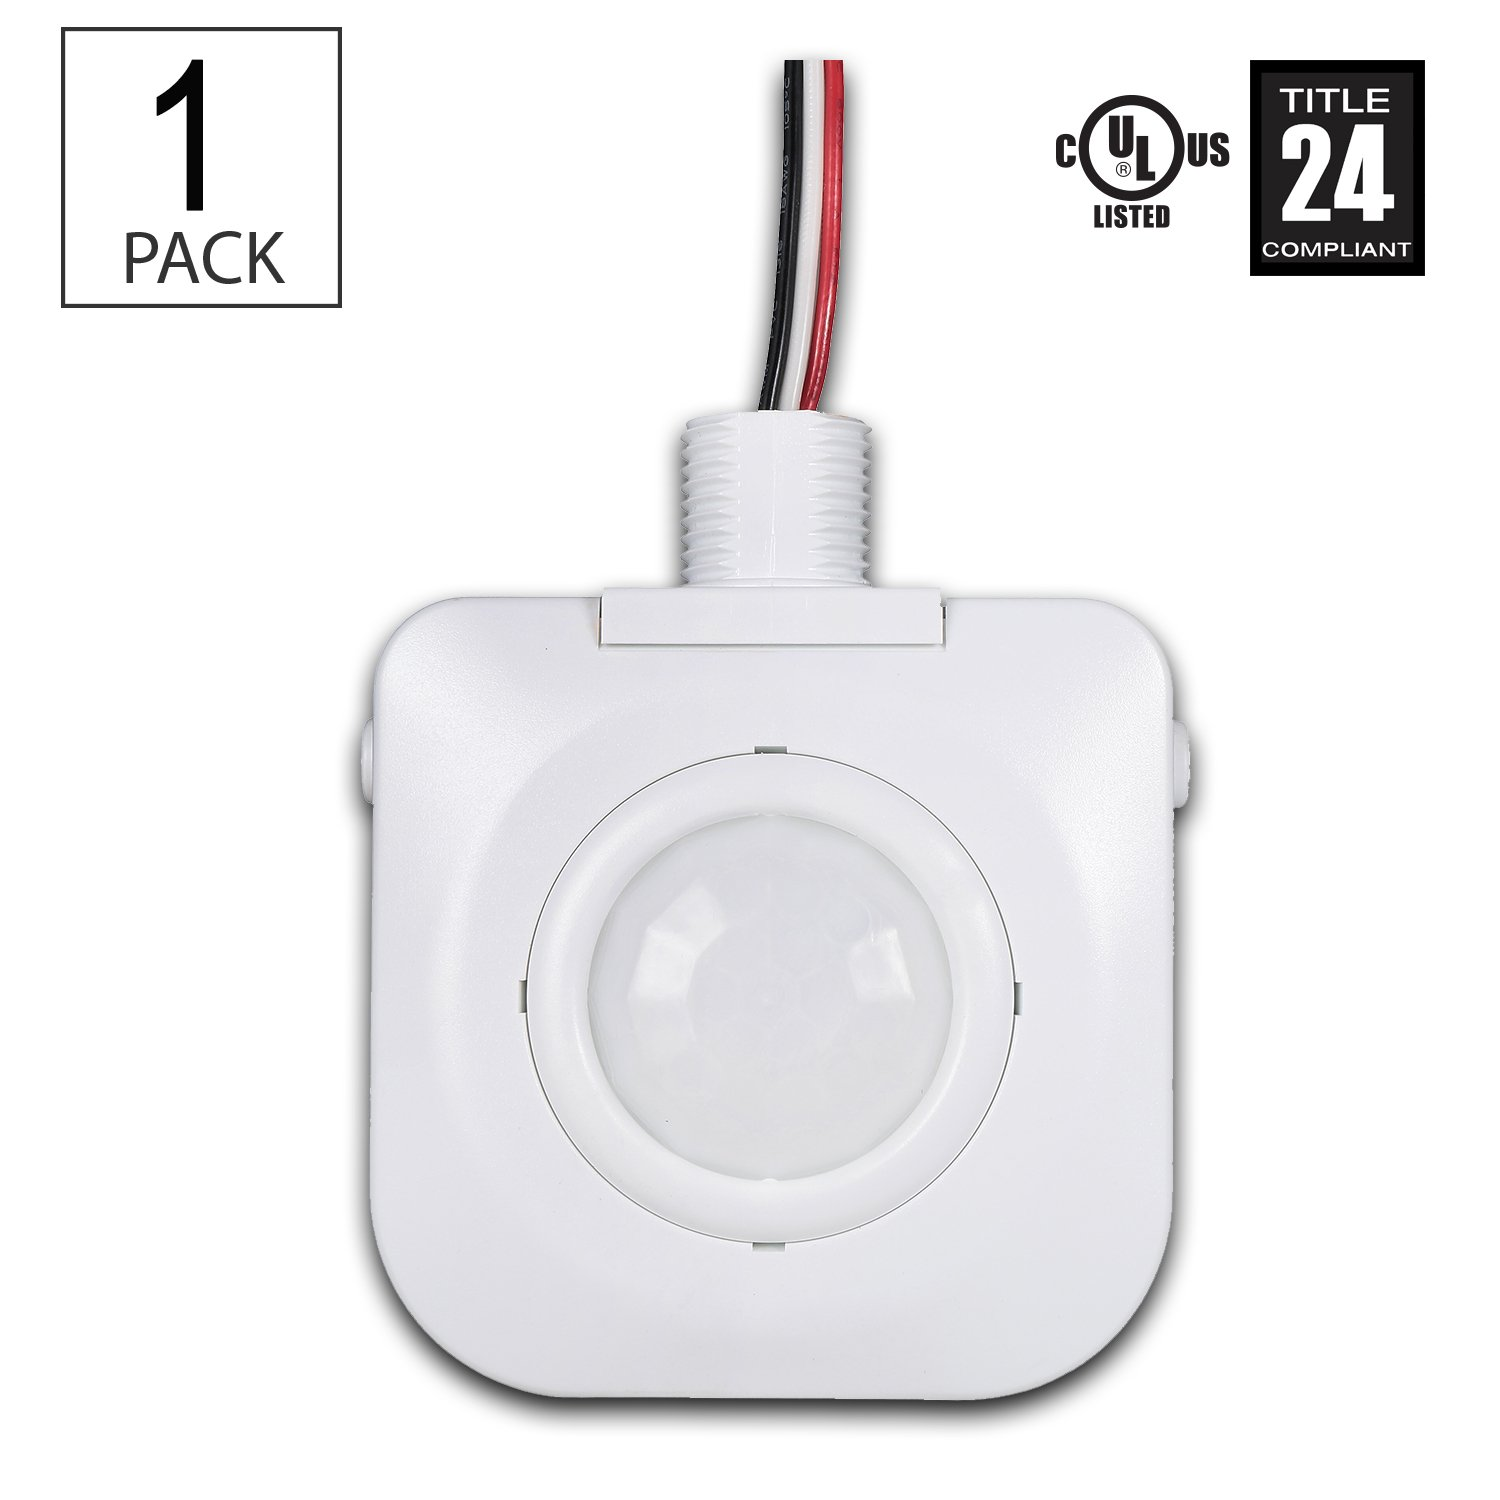 (Pack of 1) Ceiling Occupancy Motion Sensor - Passive Infrared Technology - High Bay Fixture Mount 360 Degree - By Dependable Direct, Hard-Wired, 120-277VAC, Commercial/Industrial Grade, White